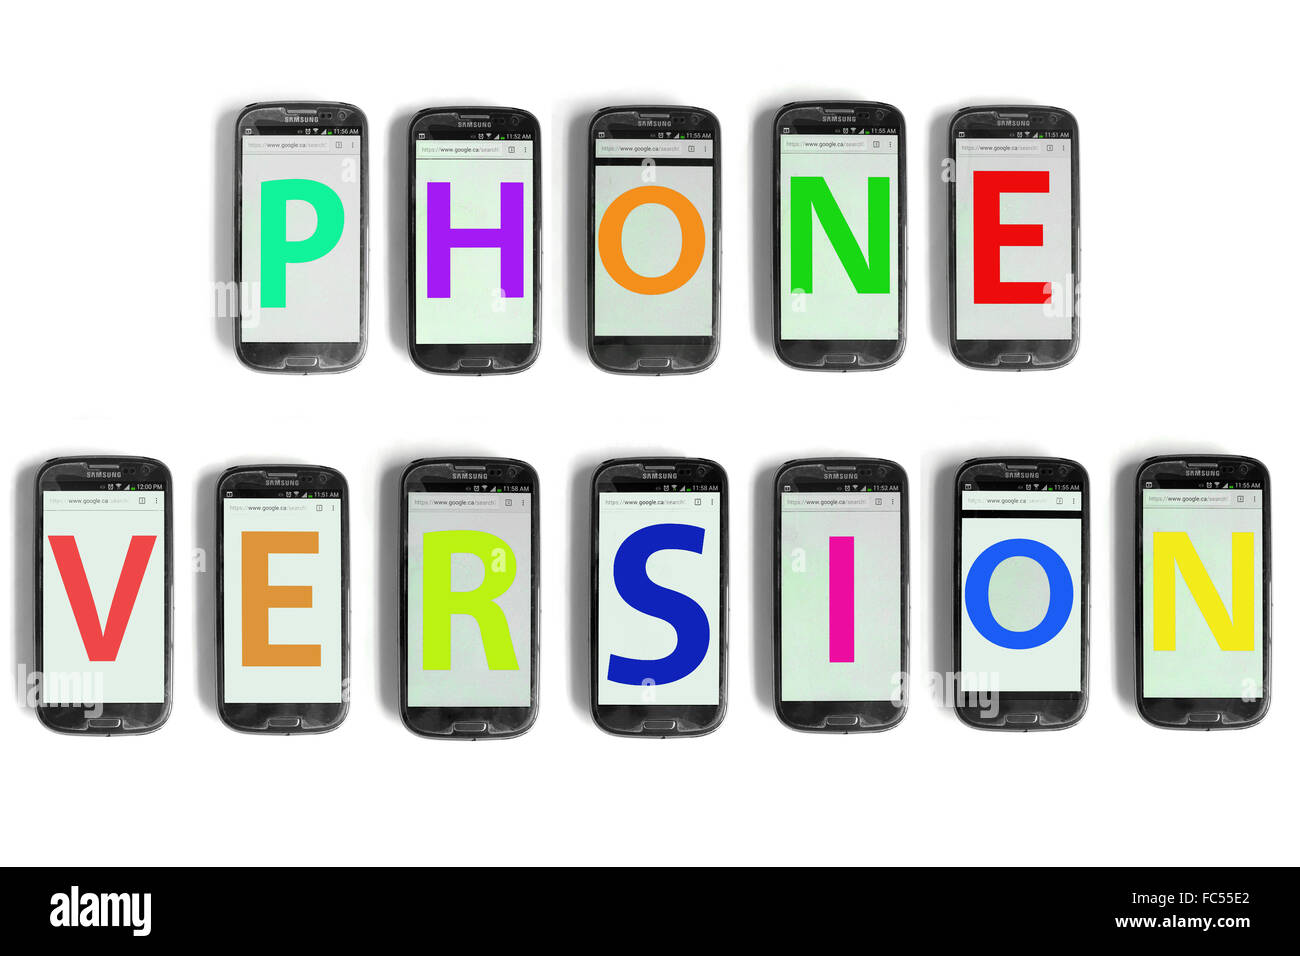 Phone Version written on the screen of smartphones photographed against a white background. - Stock Image